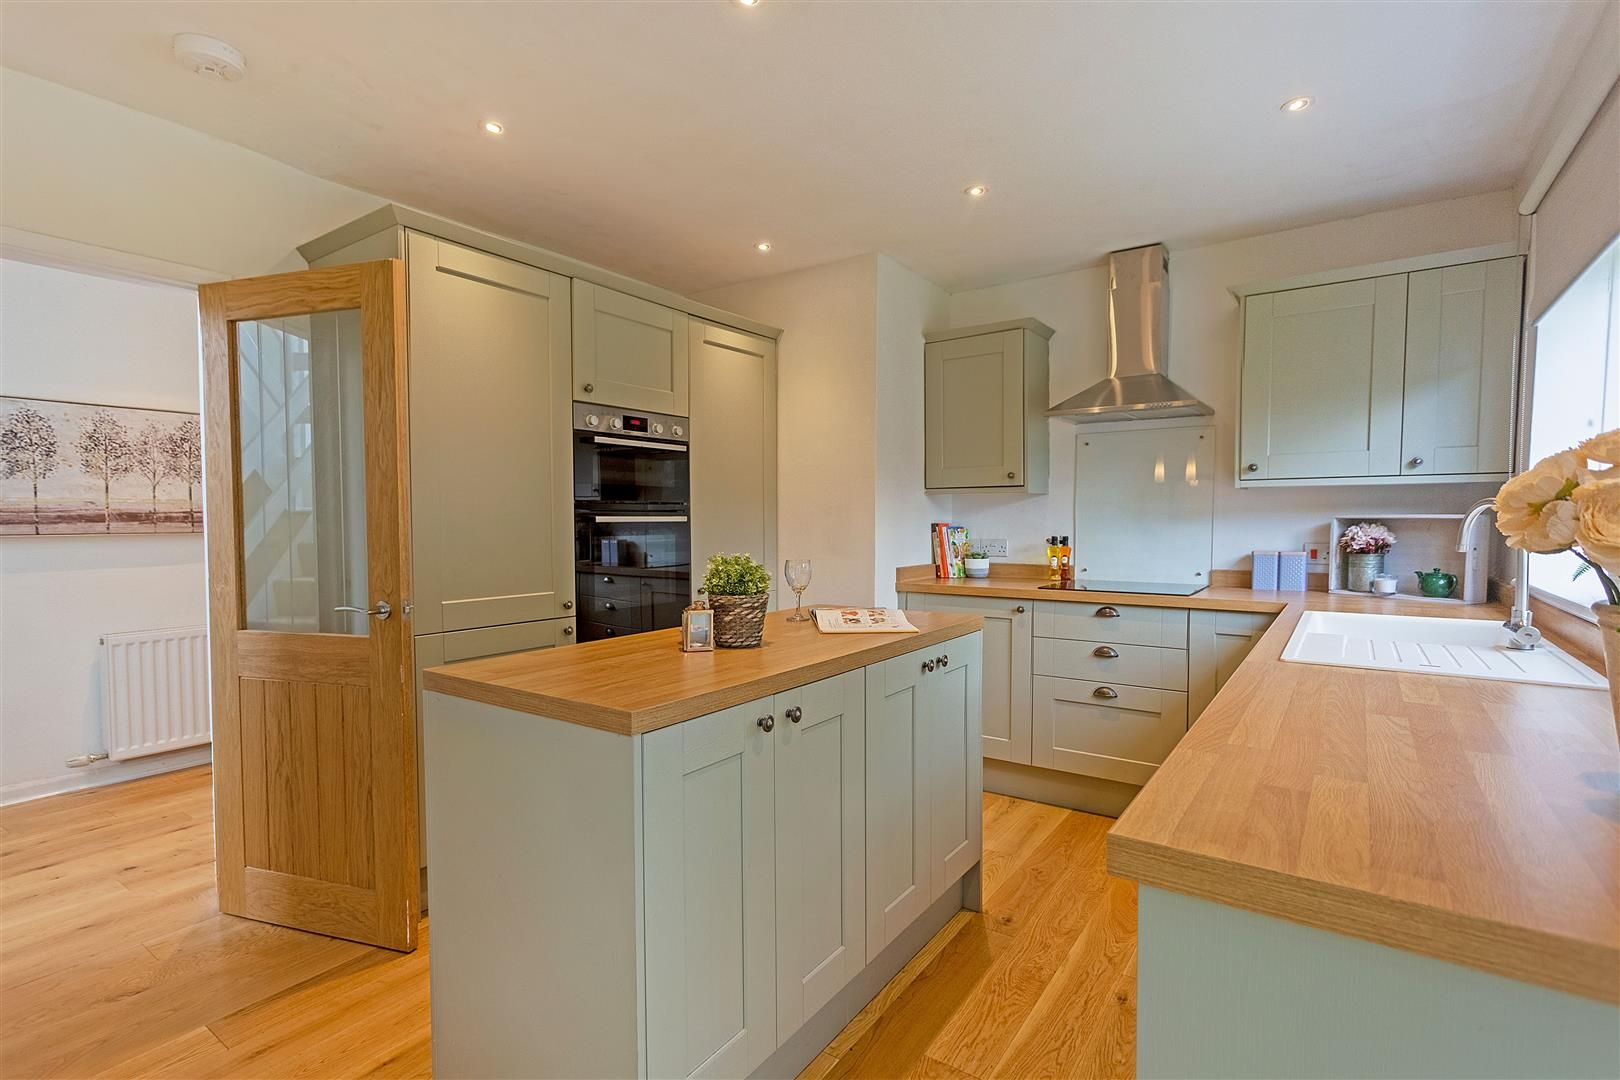 4 bed detached for sale in Luston  - Property Image 6